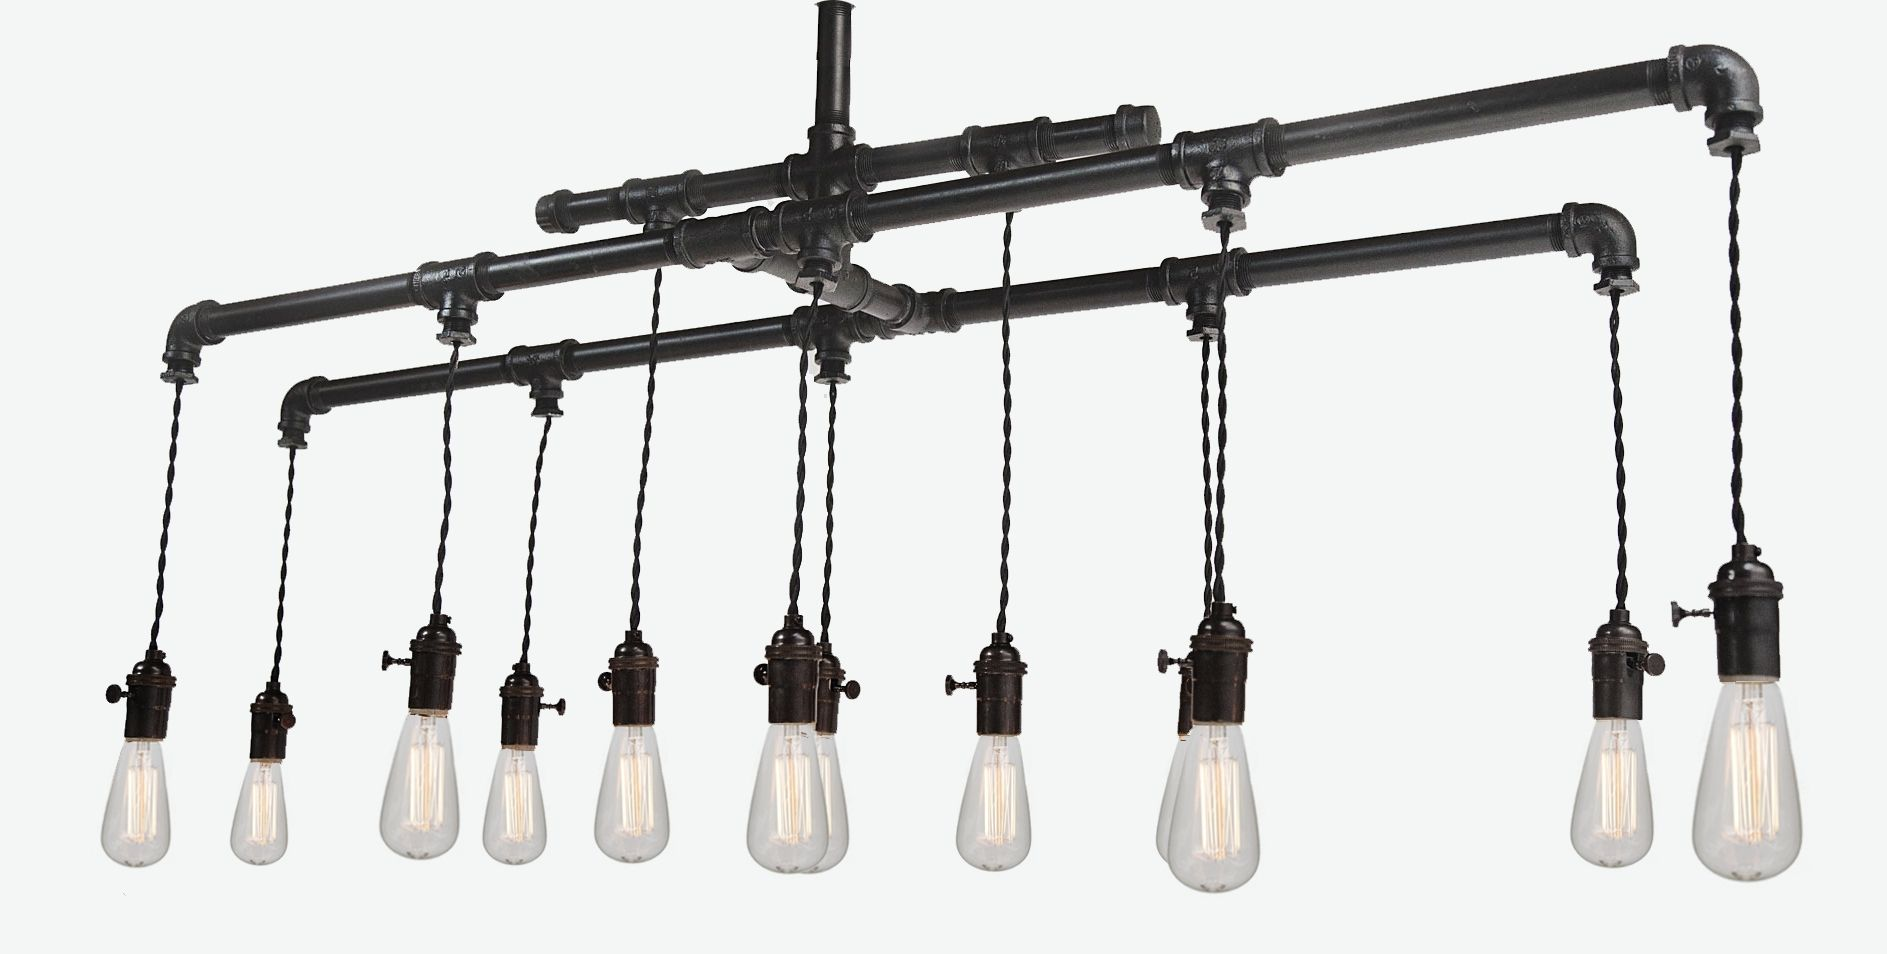 Custom Industrial Pipe Edison Chandelier With 12 Bulbs By